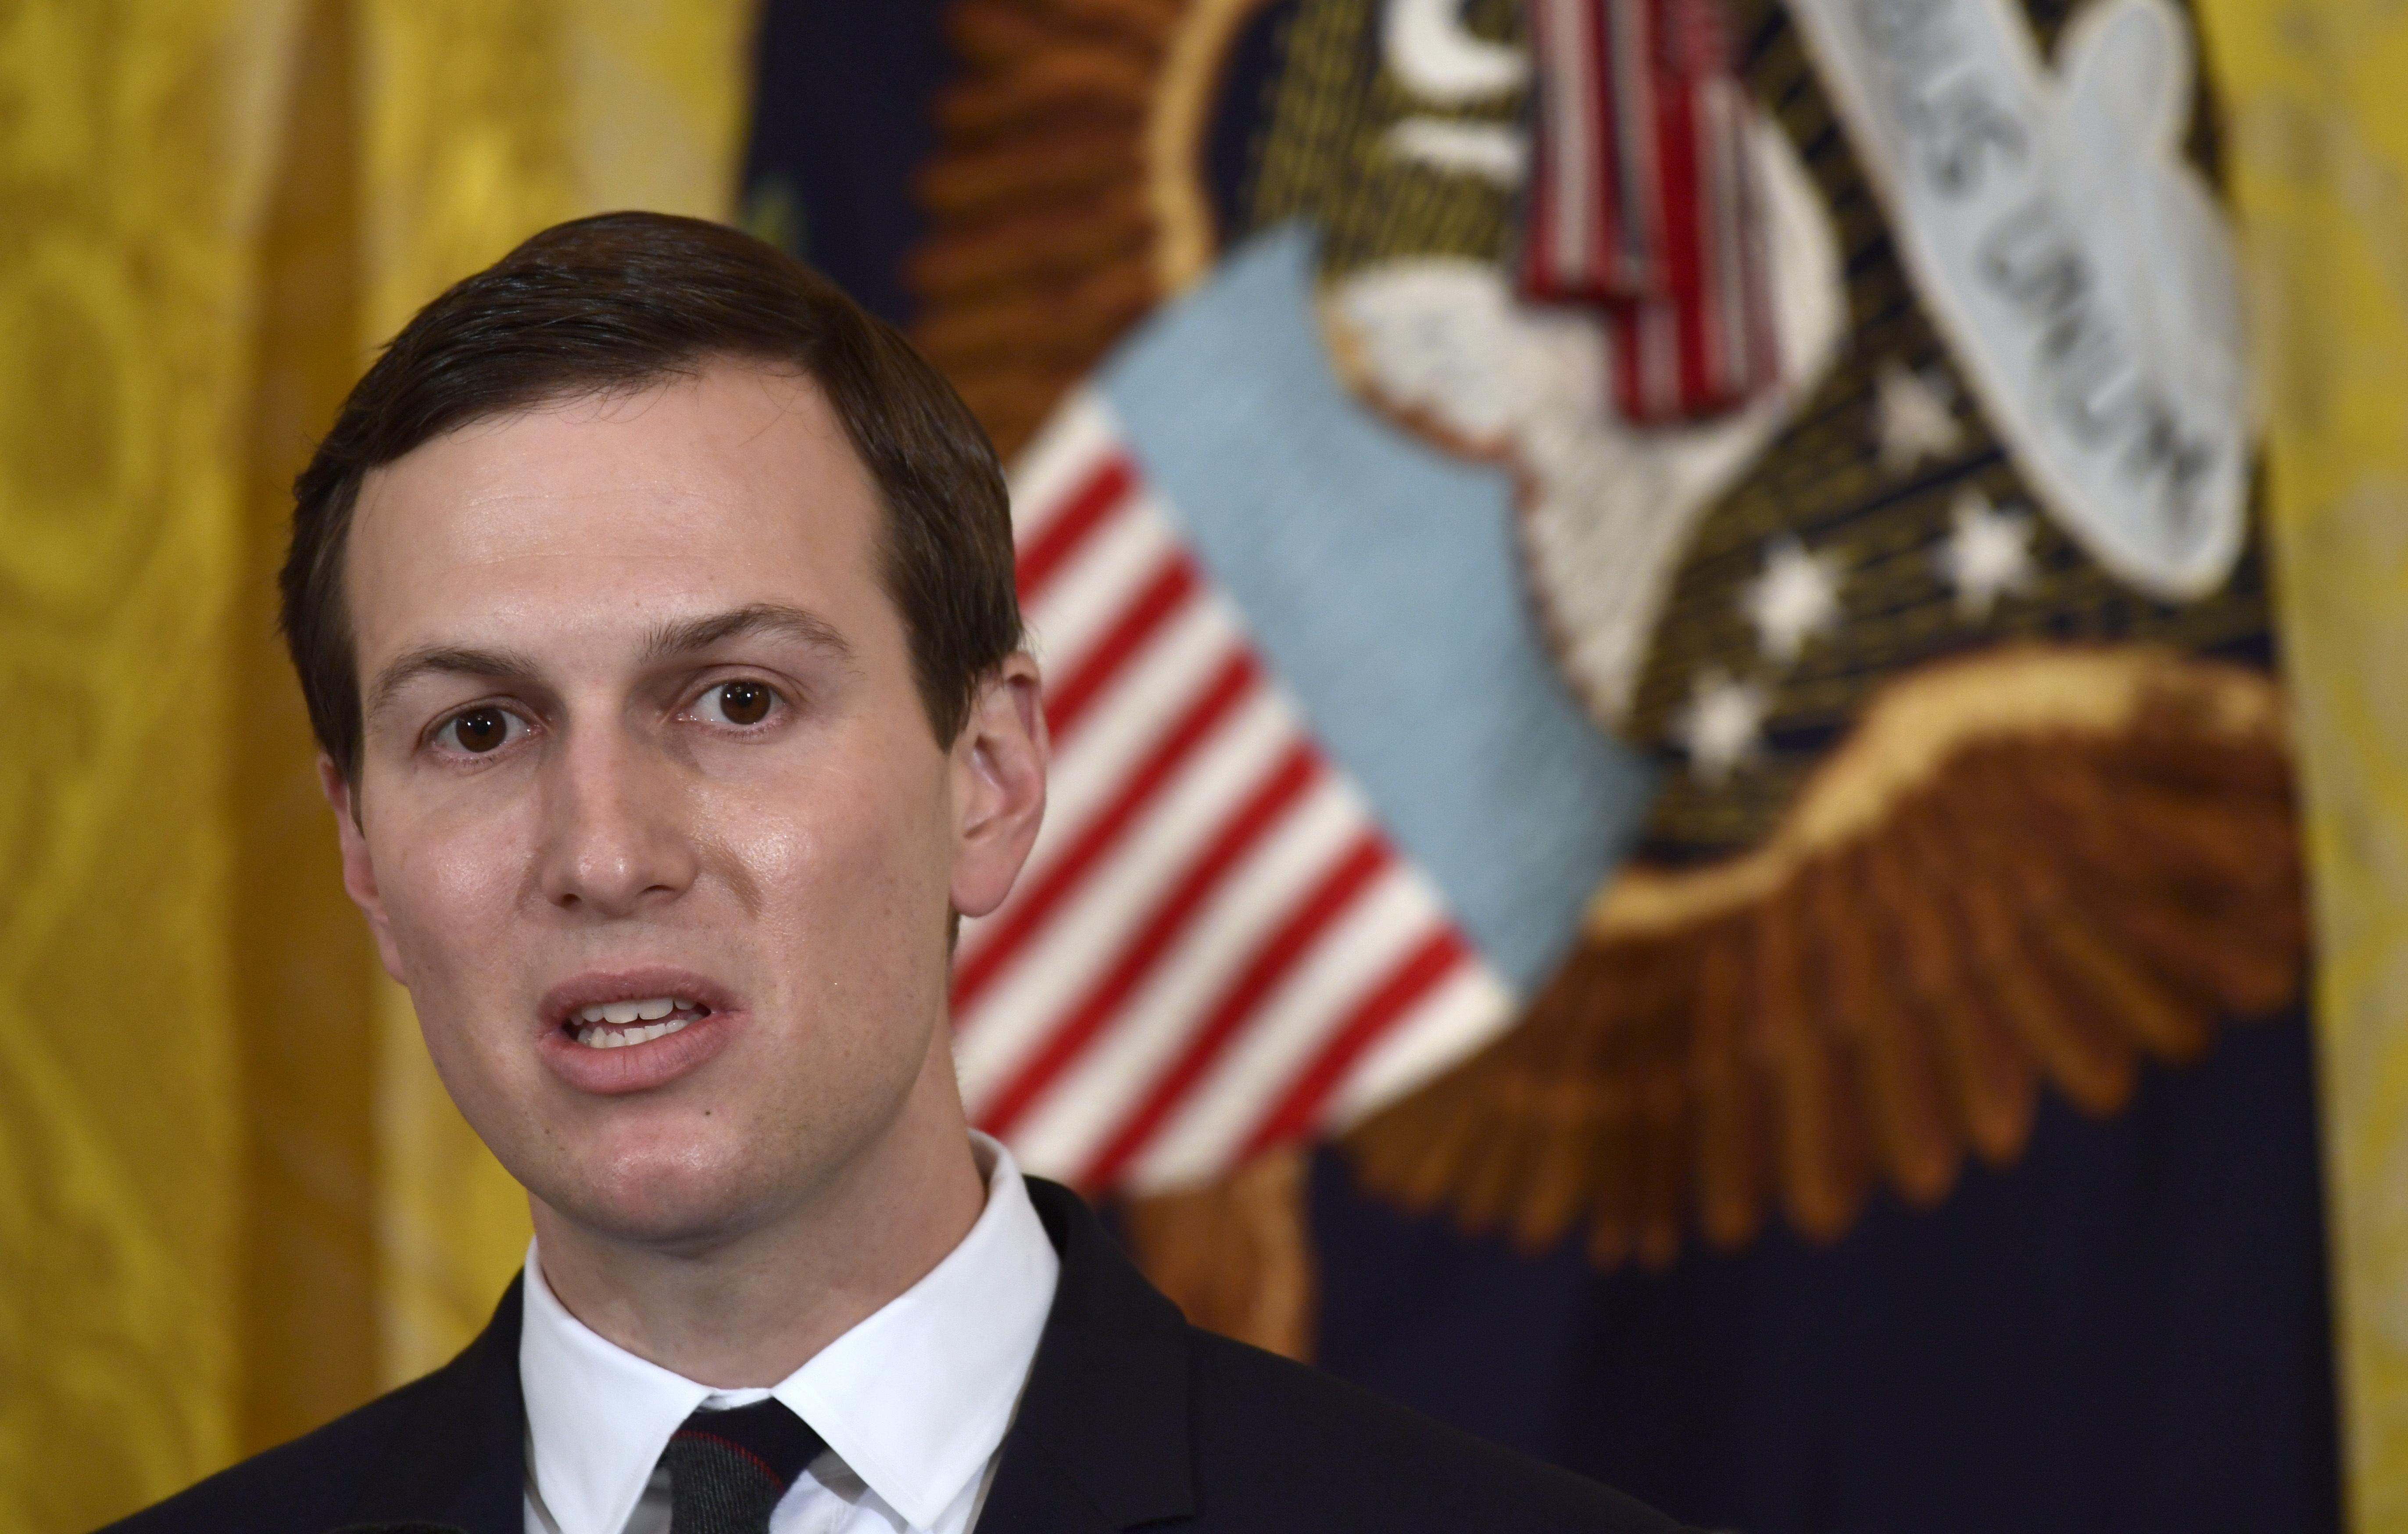 Jared Kushner hacked? Senator alarmed by Trump adviser's reported chats with Saudi crown prince